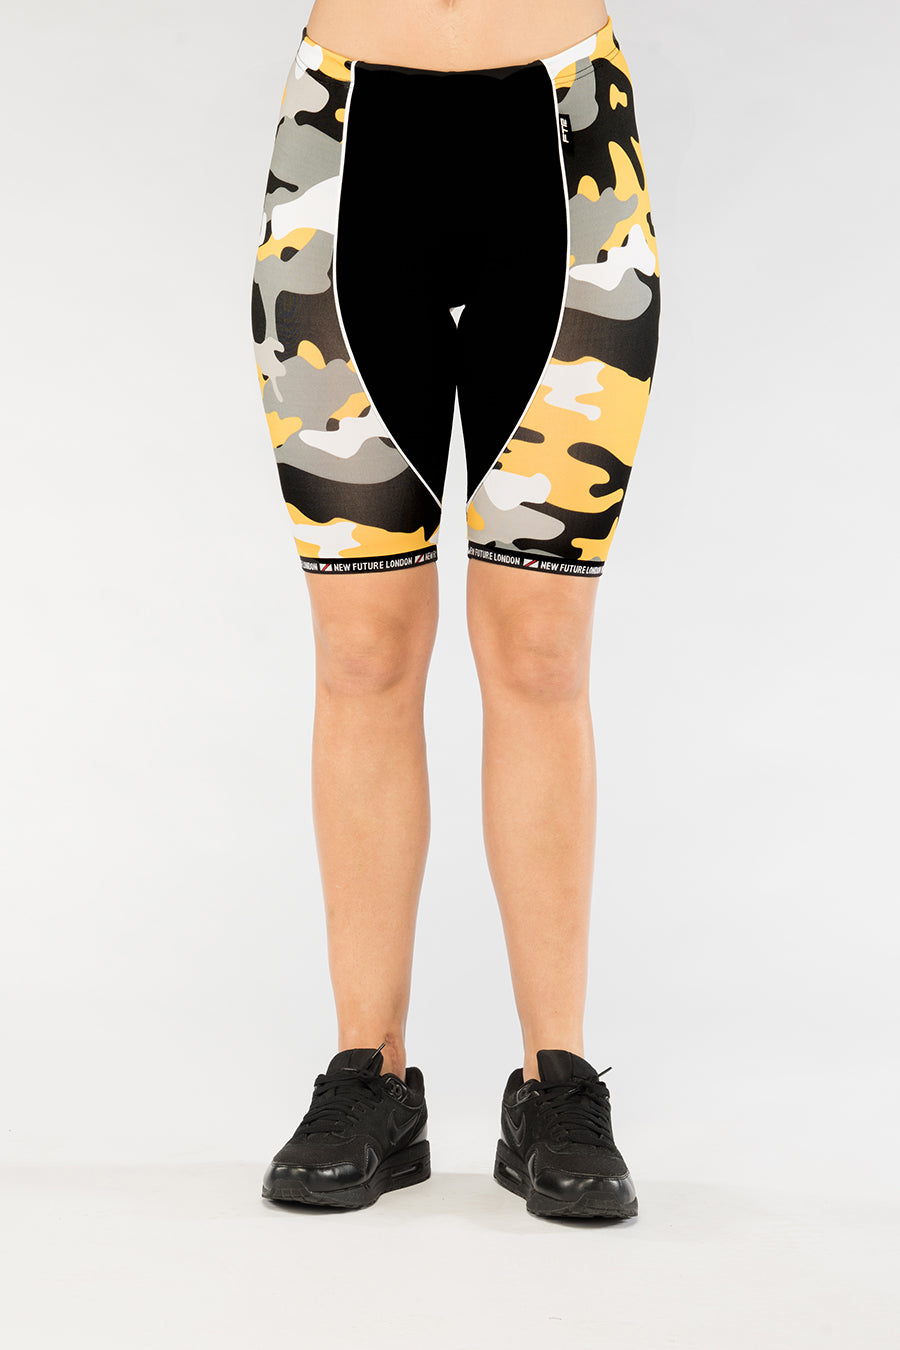 new_future_london_cycle_shorts_camo_yellow_1-1.jpg